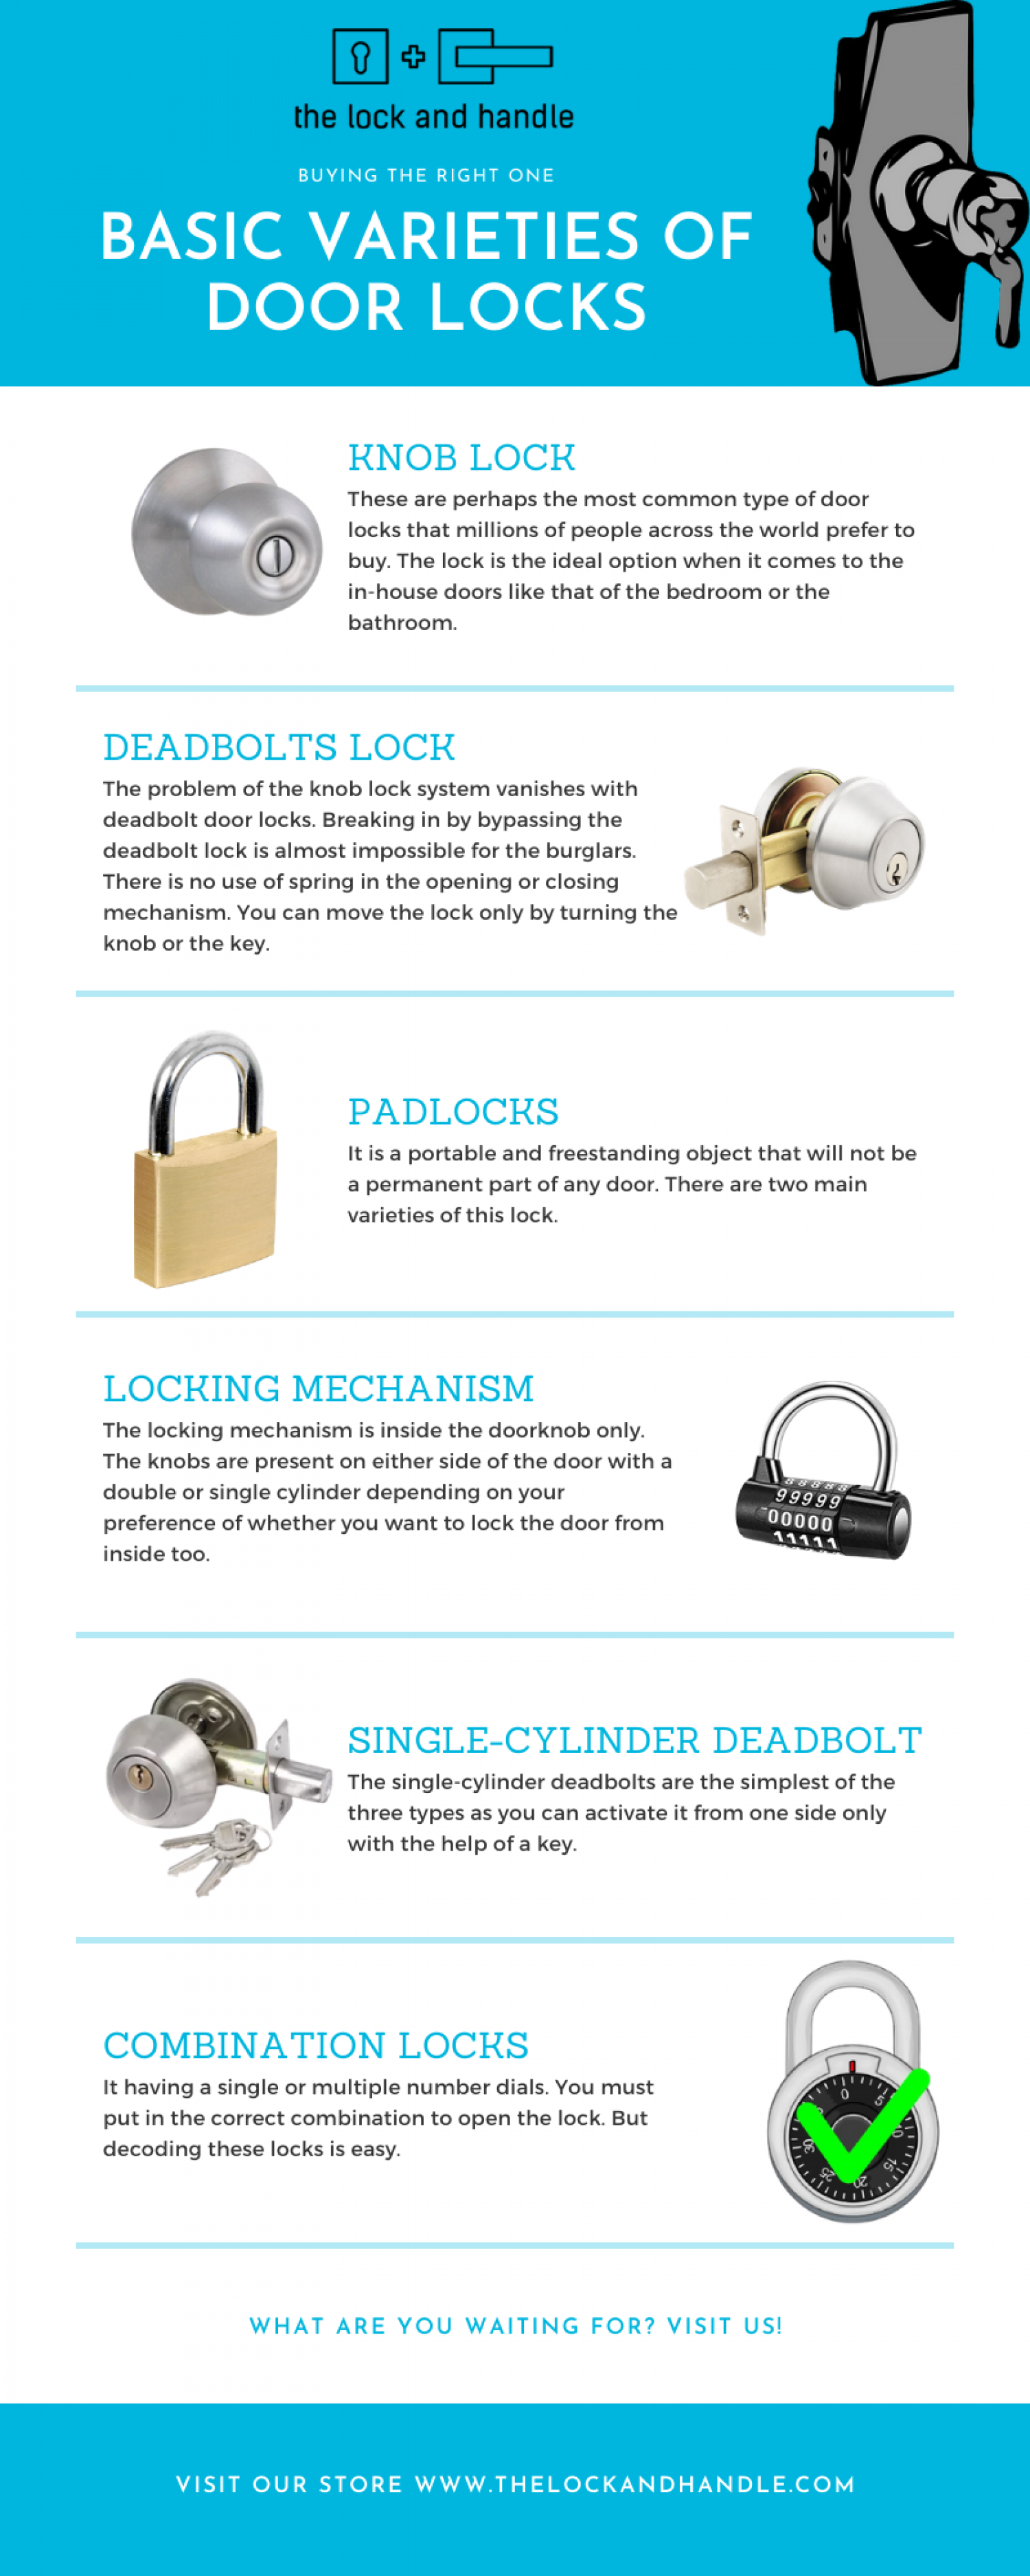 Know About the Basic Varieties of Door Locks - The Lock & Handle Infographic